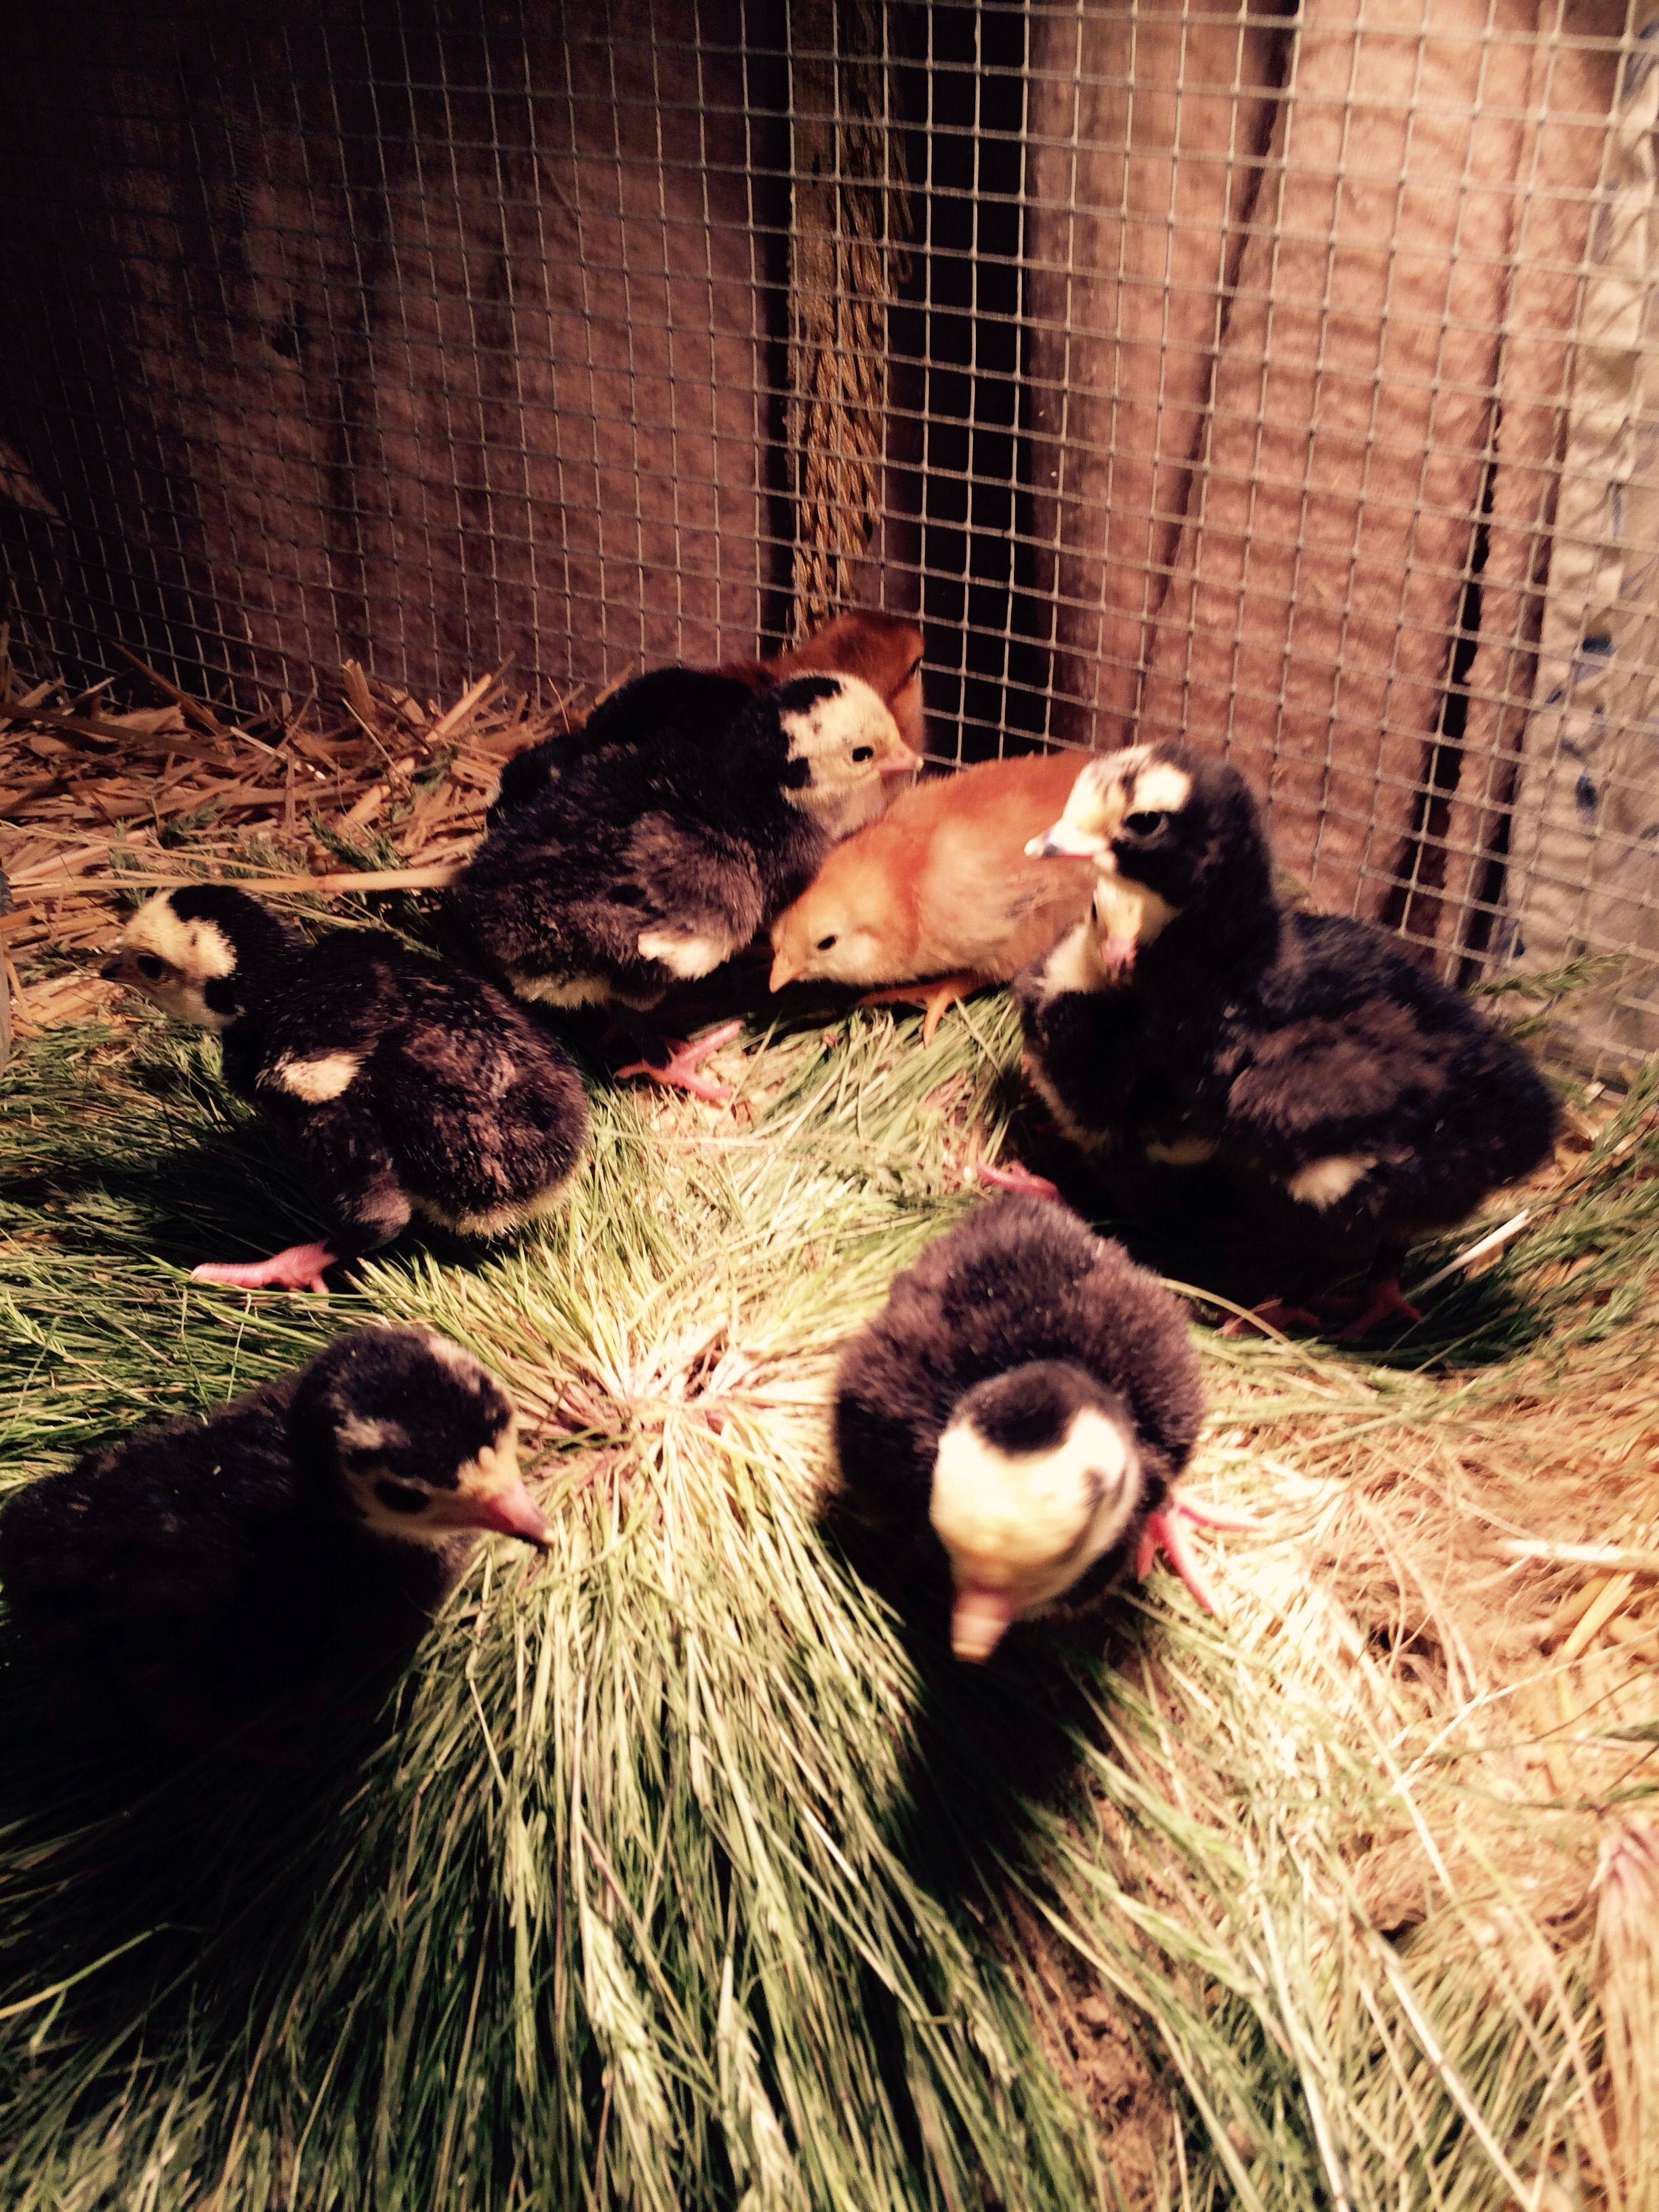 Just found seven black Spanish turkey chicks and two chicken chicks we put them under lights for a week until mama finishes hatching her eggs